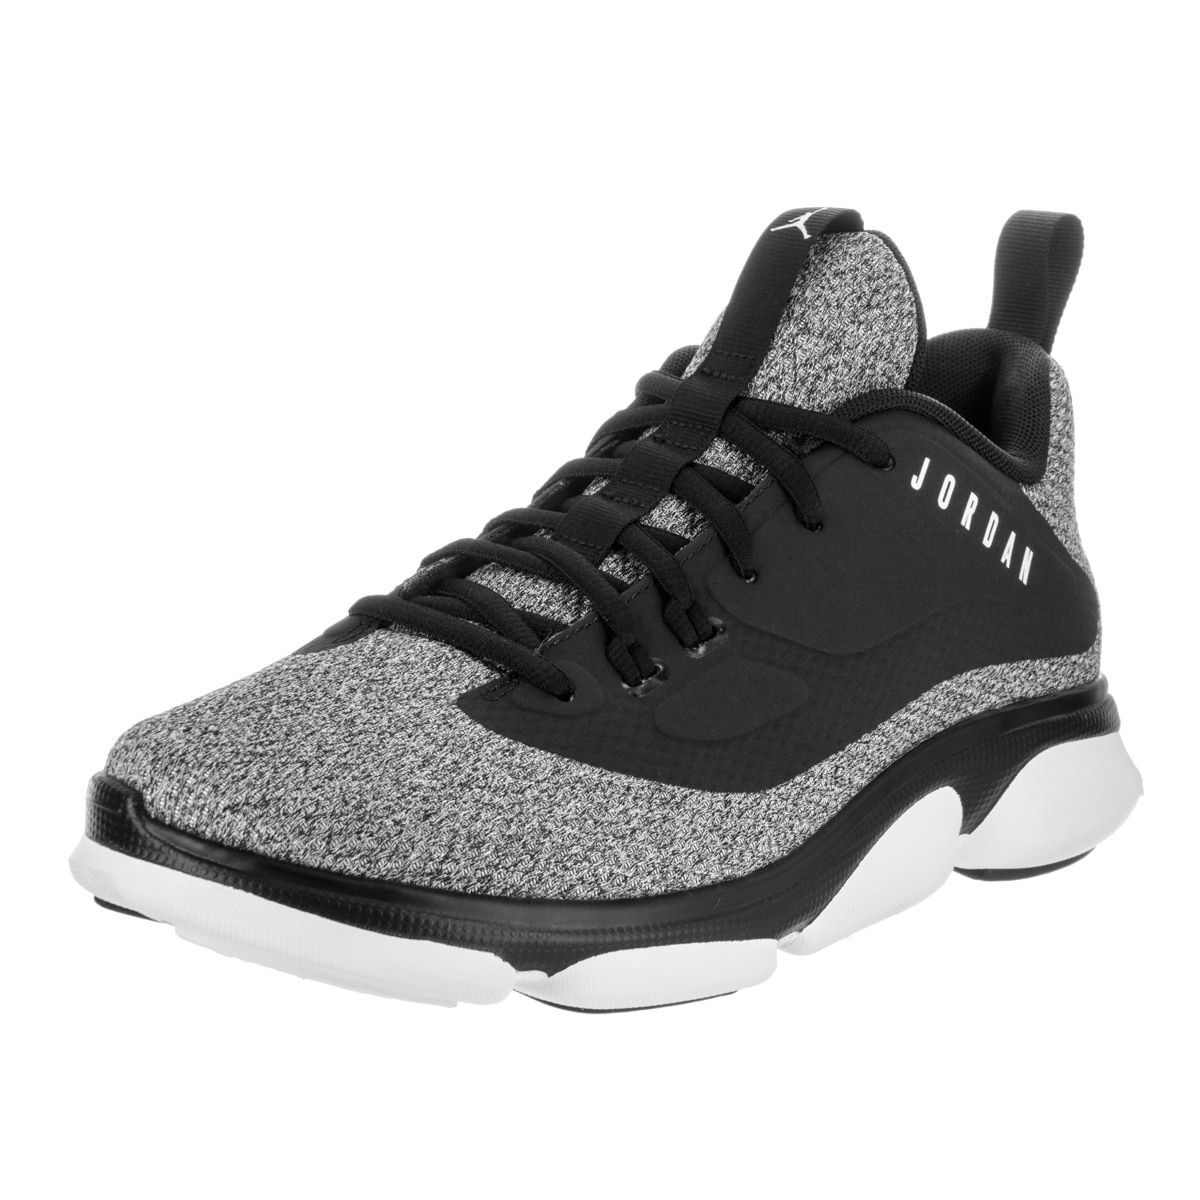 jordan gym shoes for men